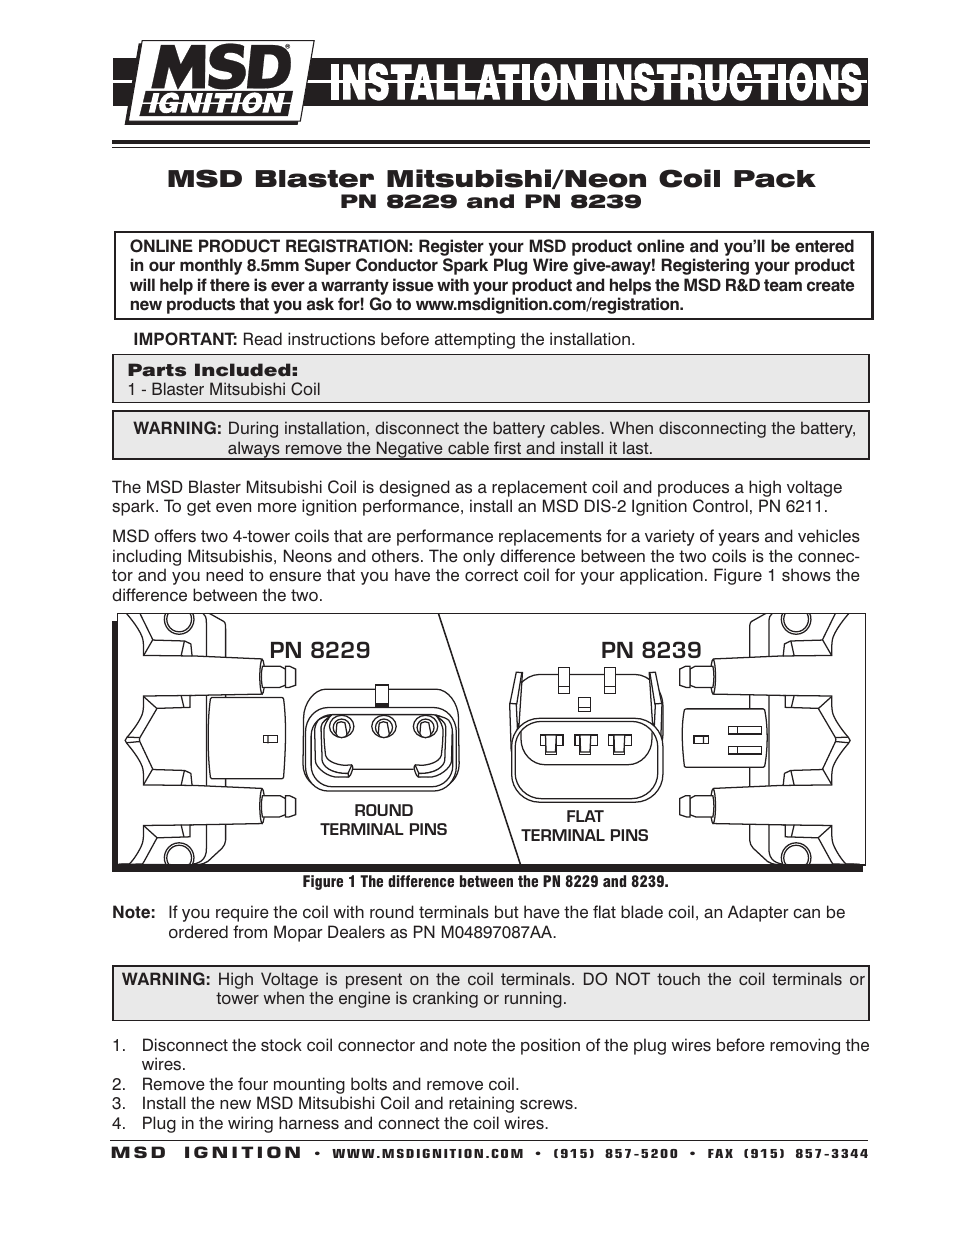 Dodge Wiring Terminals Coil Connector Library Msd 8239 Mitsubishi 1996 On Installation User Manual 2 Pages